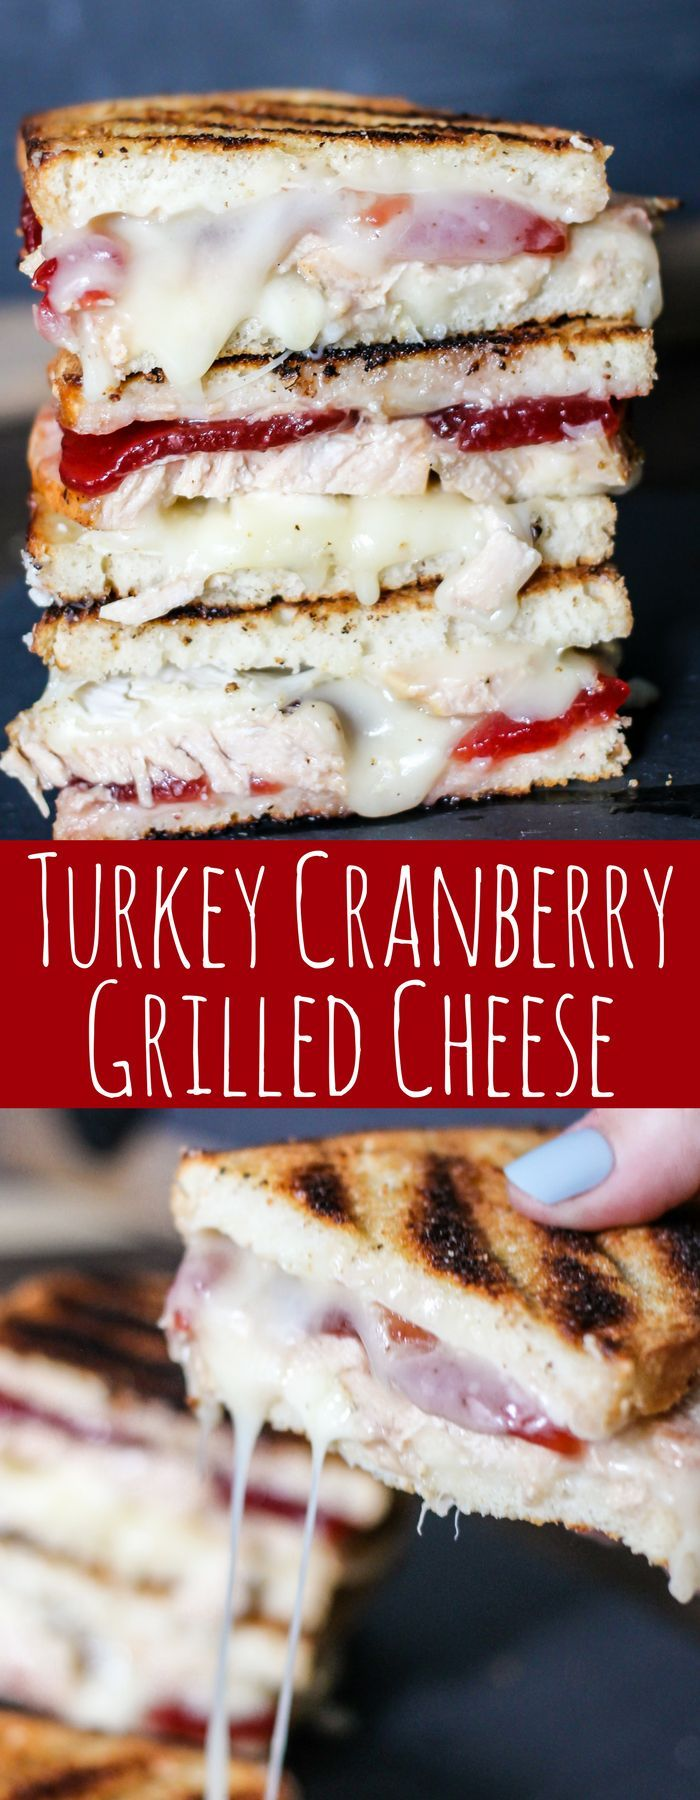 Turkey Cranberry Grilled Cheese is the ULTIMATE Thanksgiving leftovers meal! Turkey, cranberry sauce, and two cheeses are combined for this tasty sandwich!